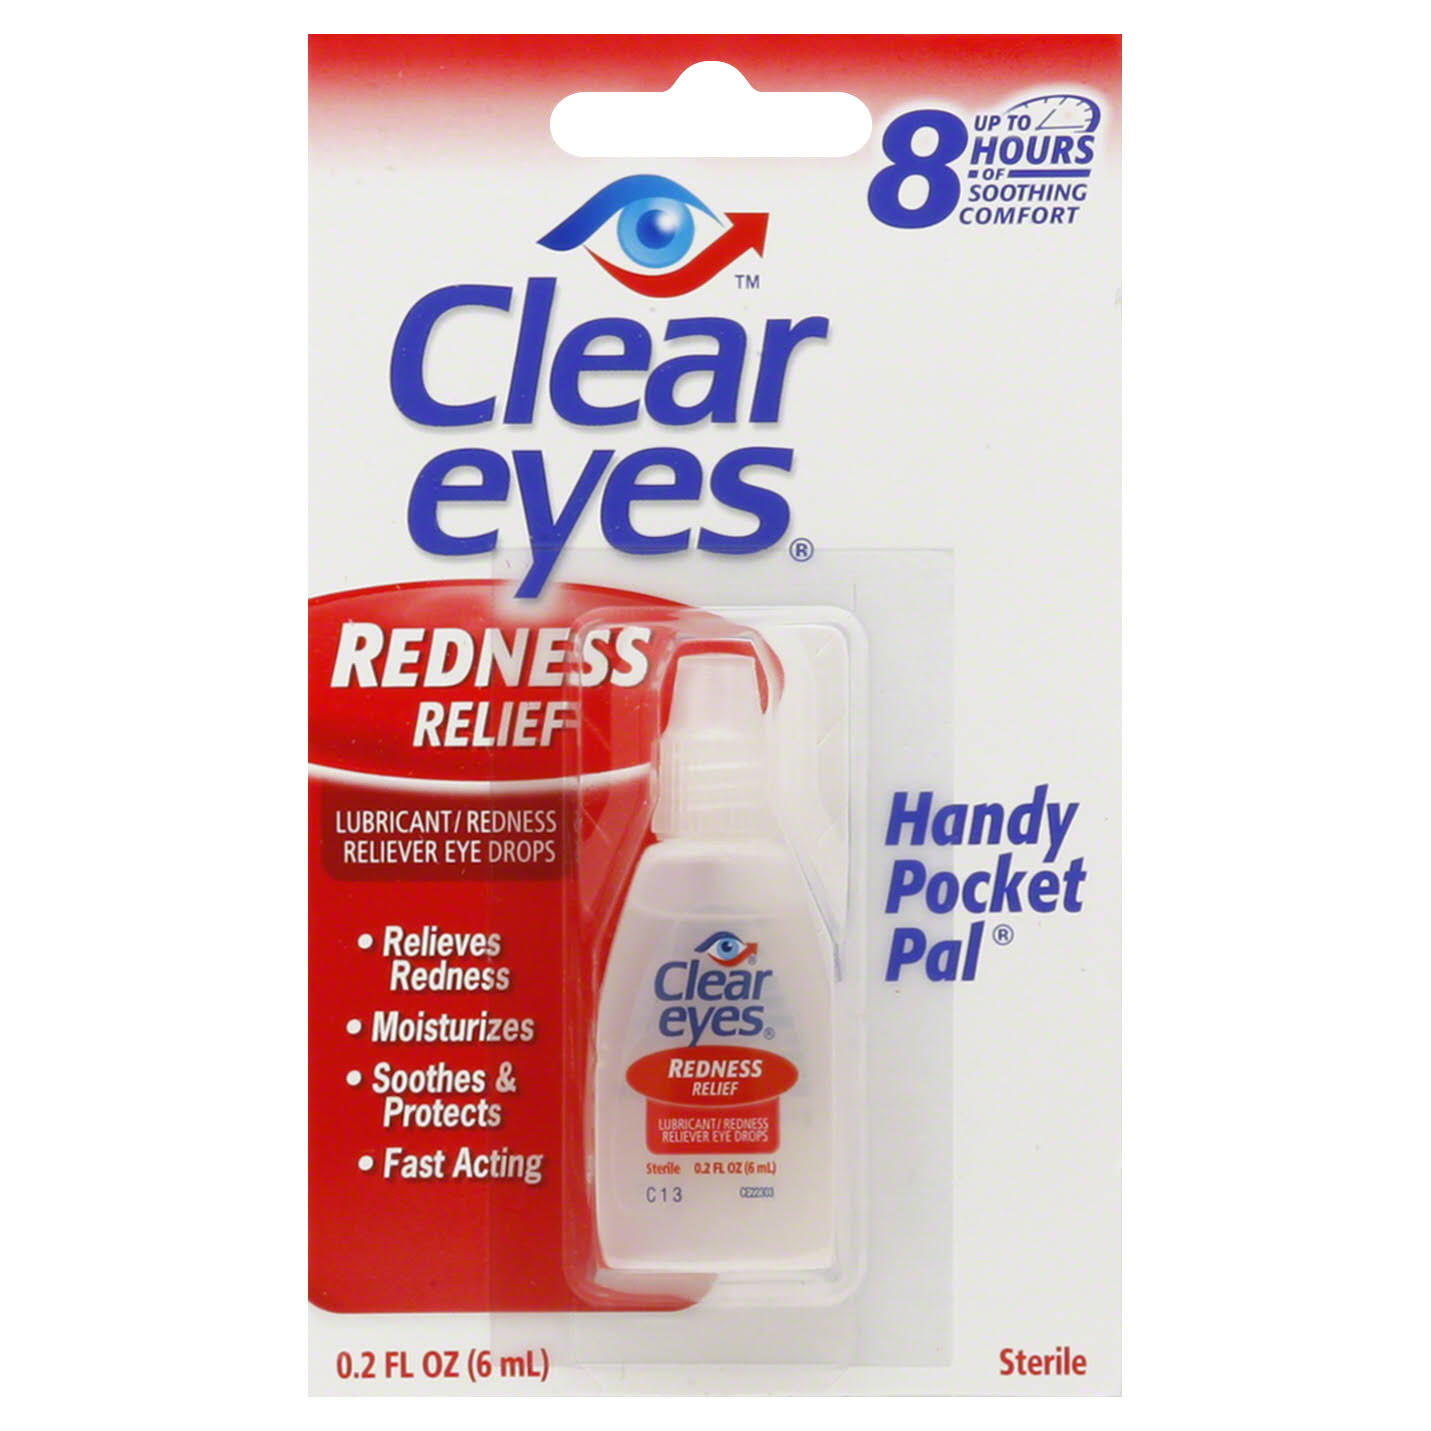 Clear Eyes Redness Relief Handy Pocket Pal - 0.2 fl oz